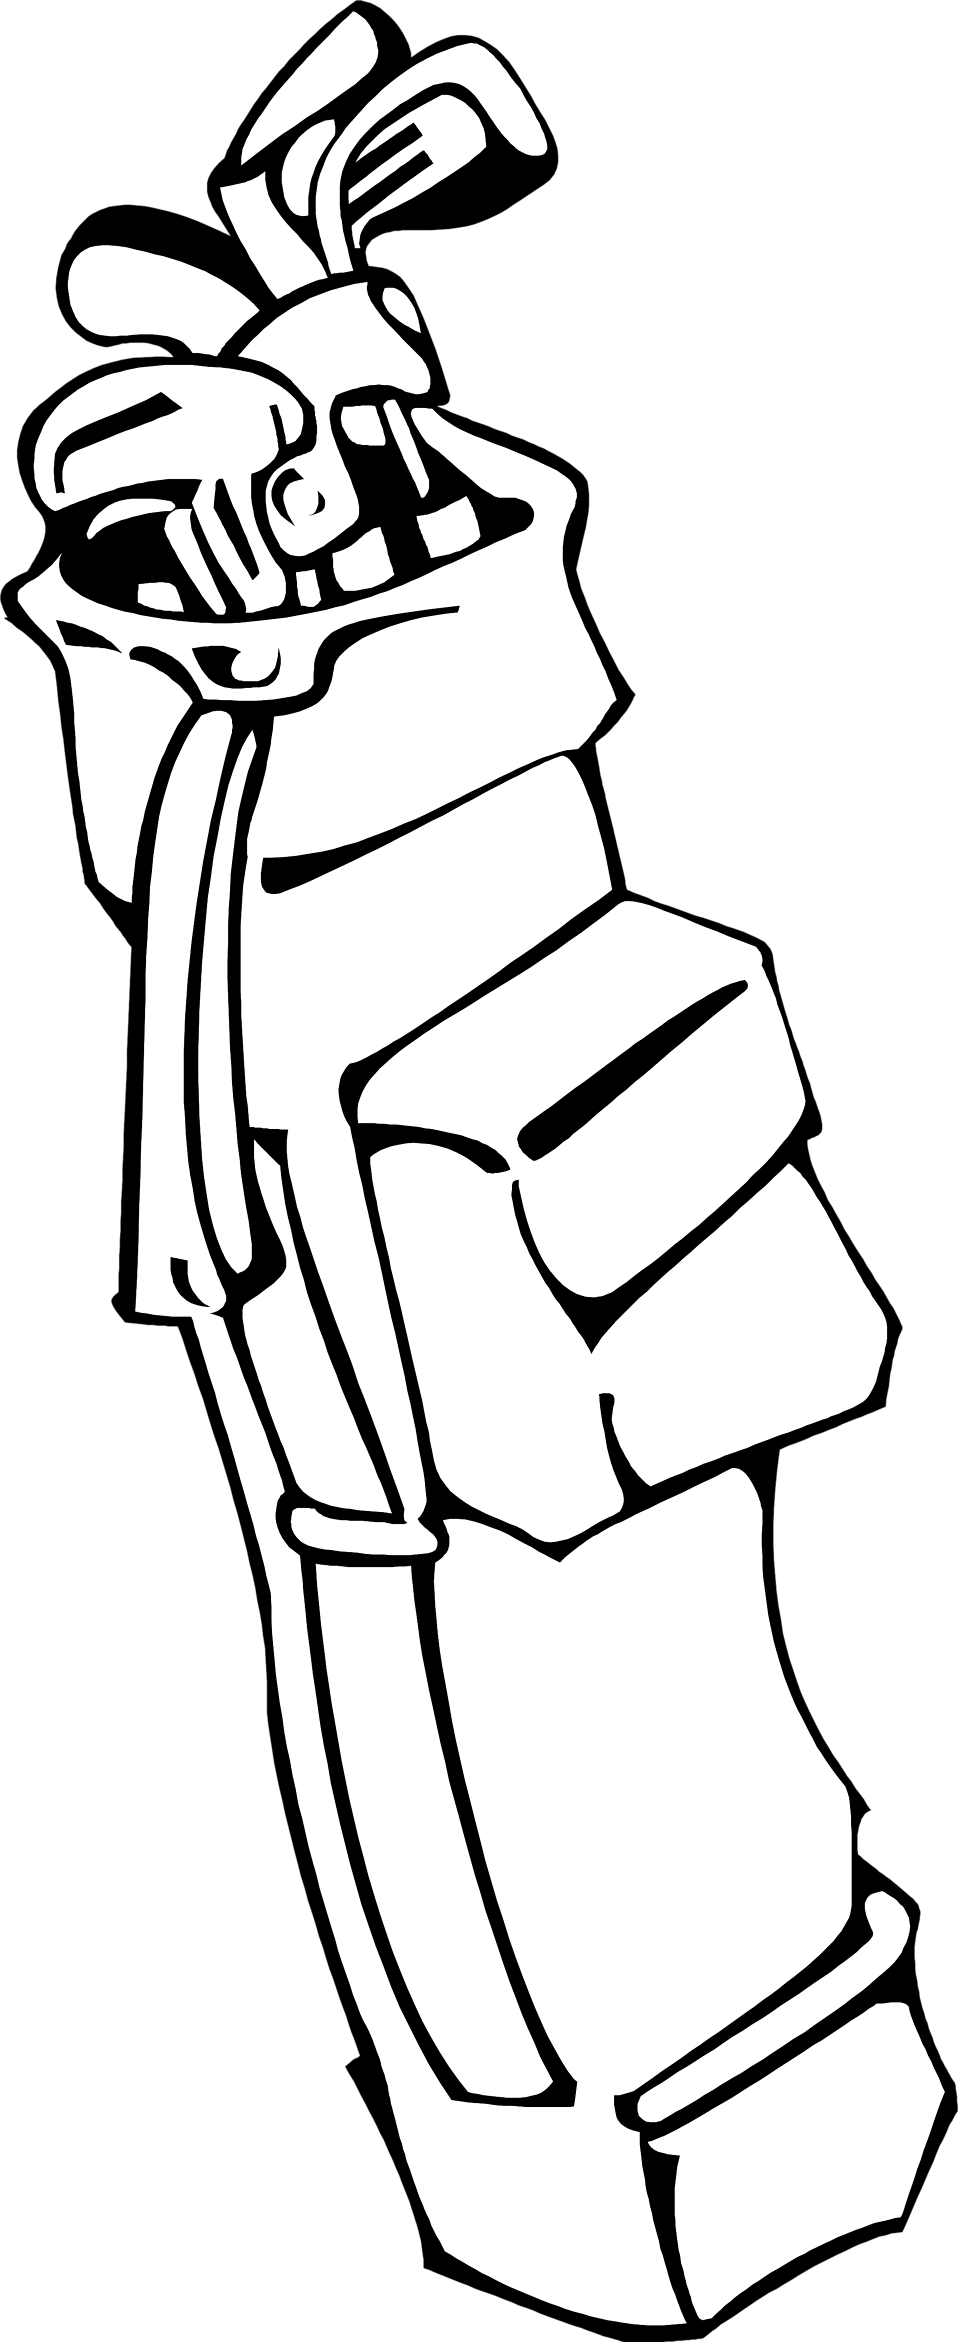 vector library download Golf bag at getdrawings. Club clipart drawing.